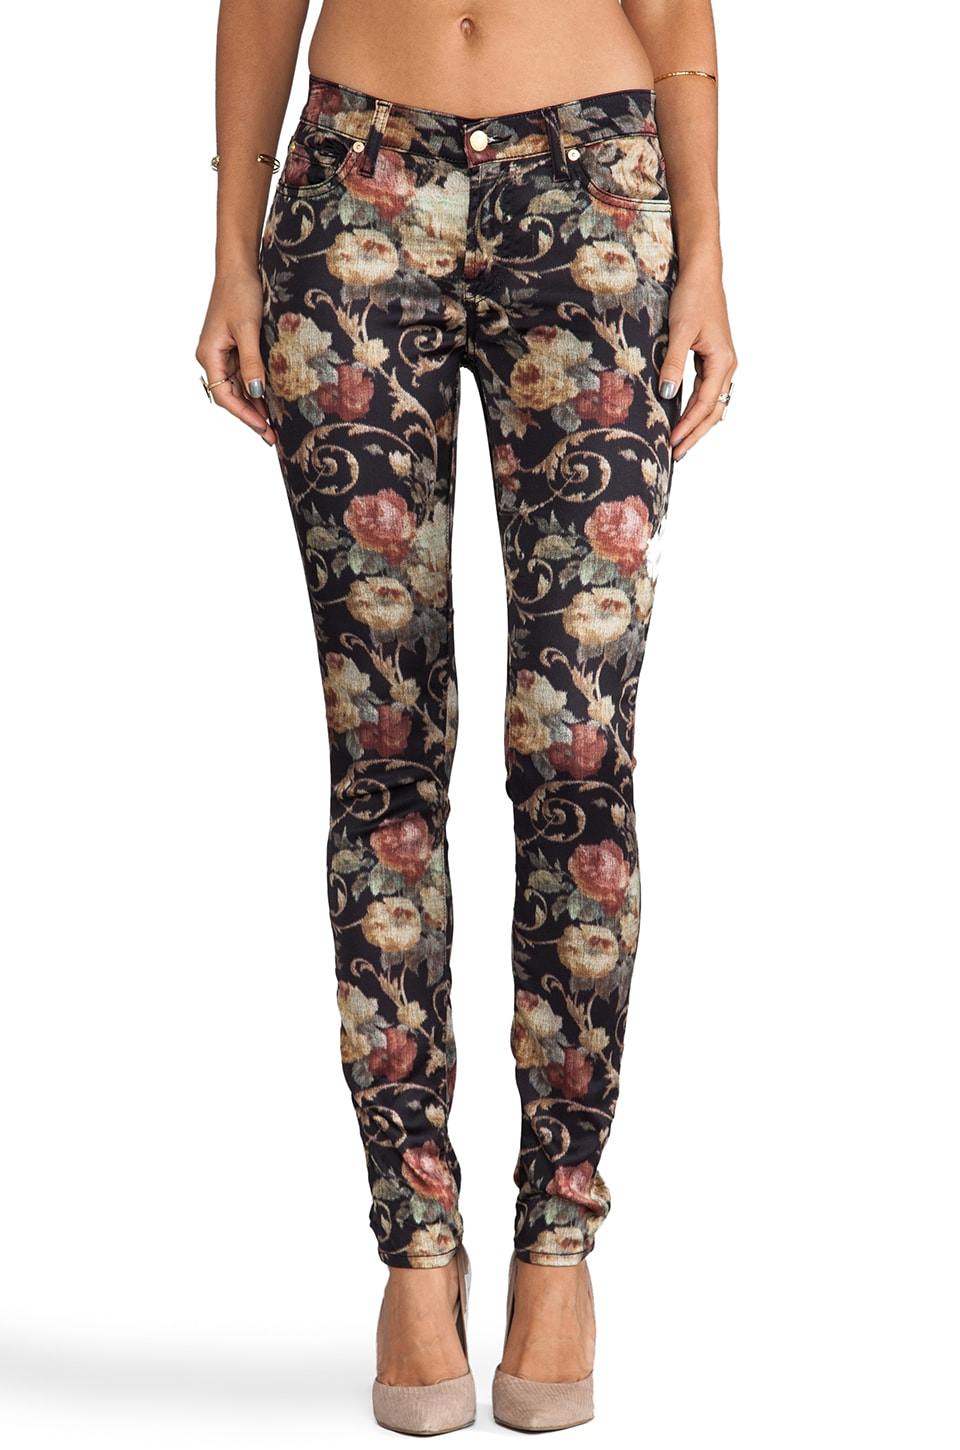 7 For All Mankind The Skinny in Floral Chintz